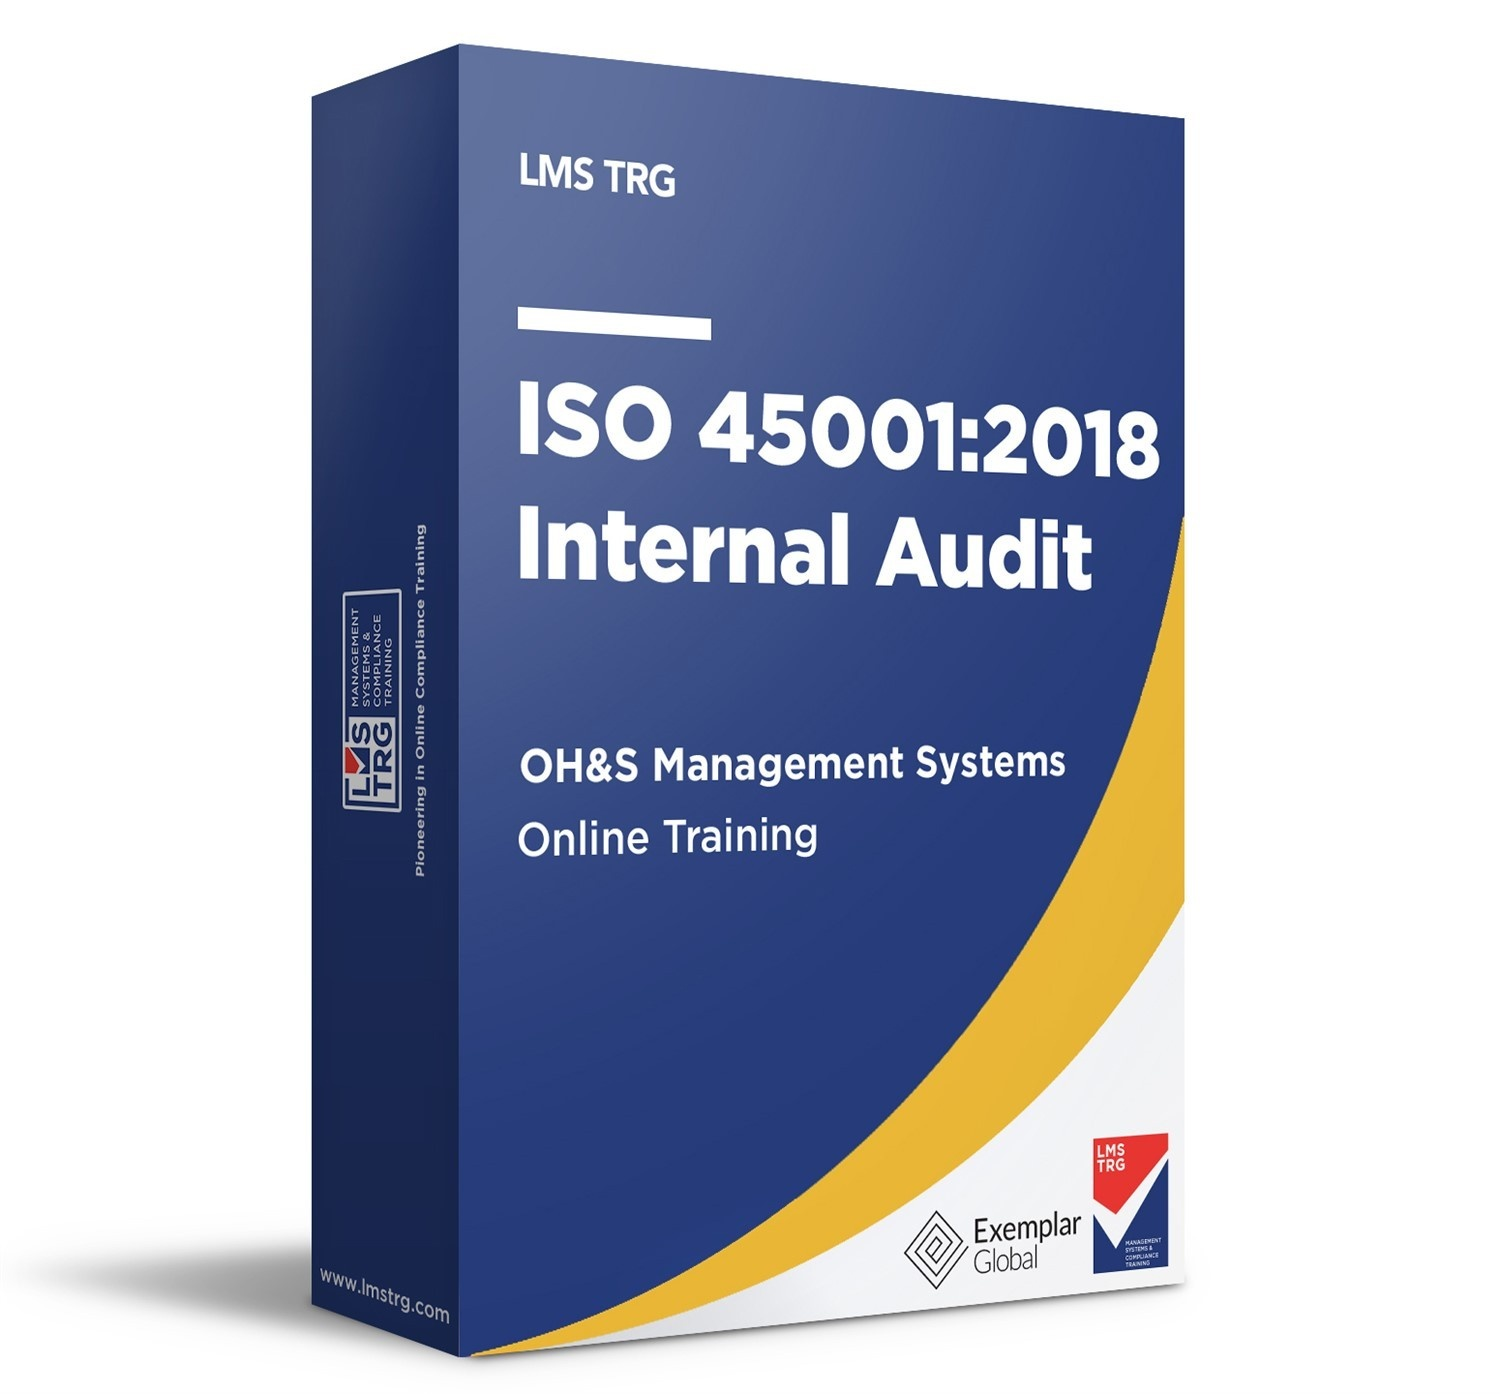 ISO 45001 Occupational Health and Safety Management Systems (OH&S) Internal Auditor ISO Online Training